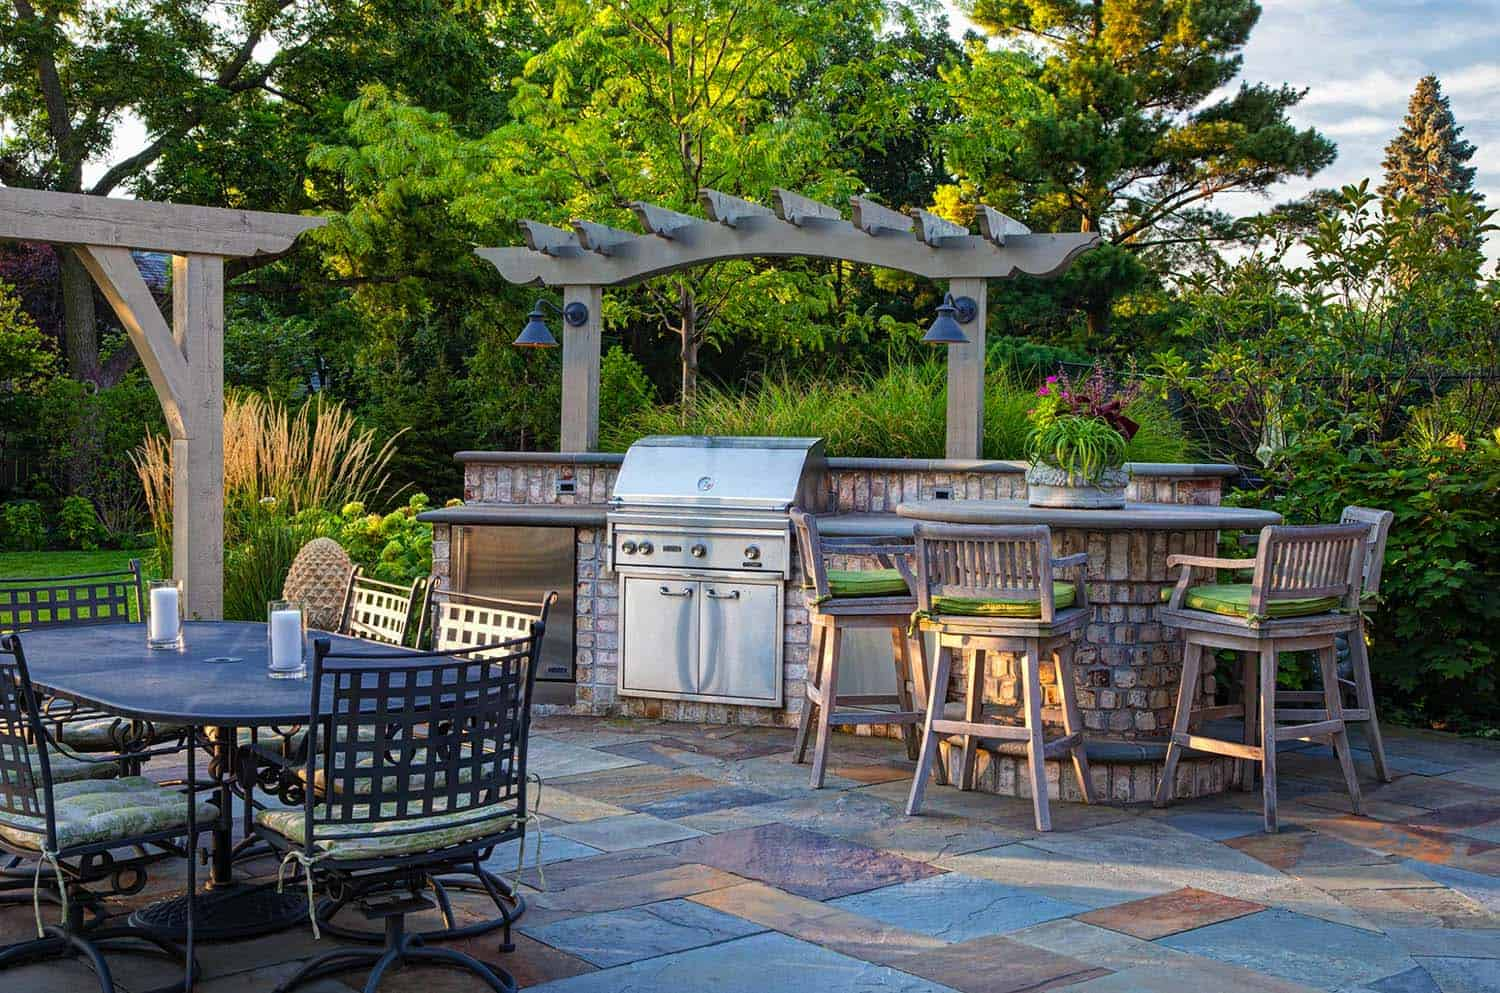 Outdoor Kitchens-Bars Entertaining-08-1 Kindesign.jpg